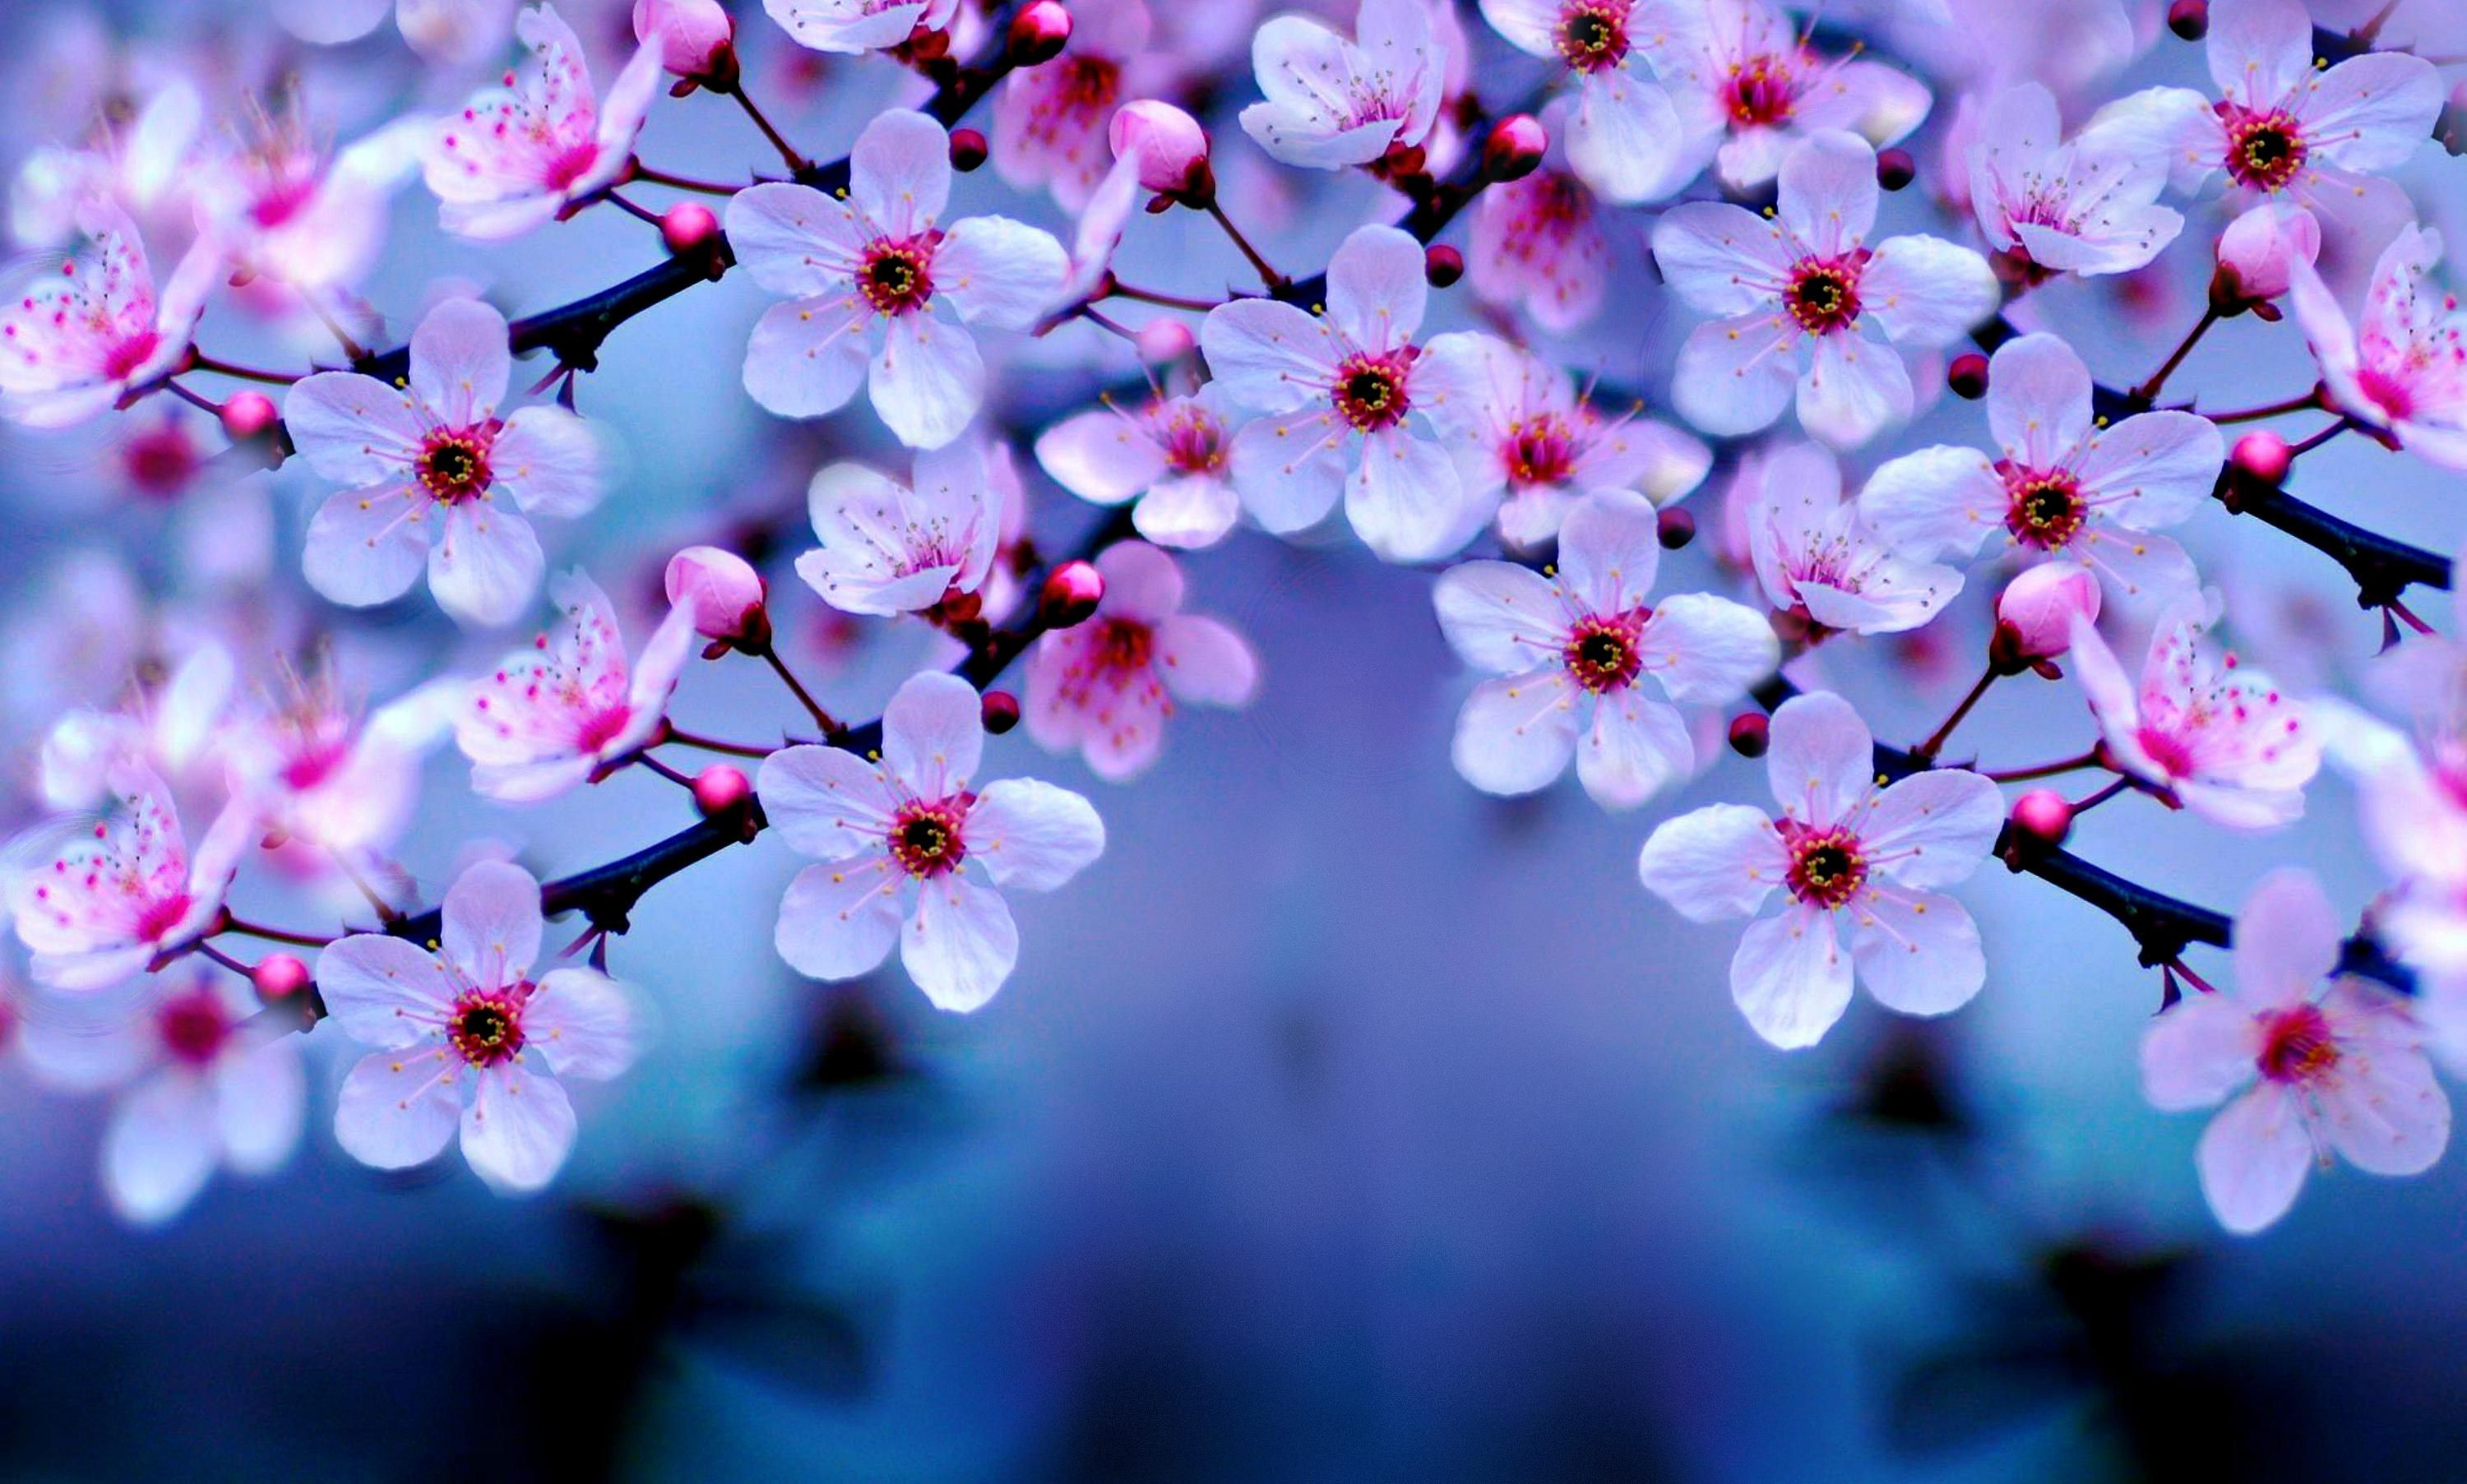 Wallpapers Flowers Cherry Blossom